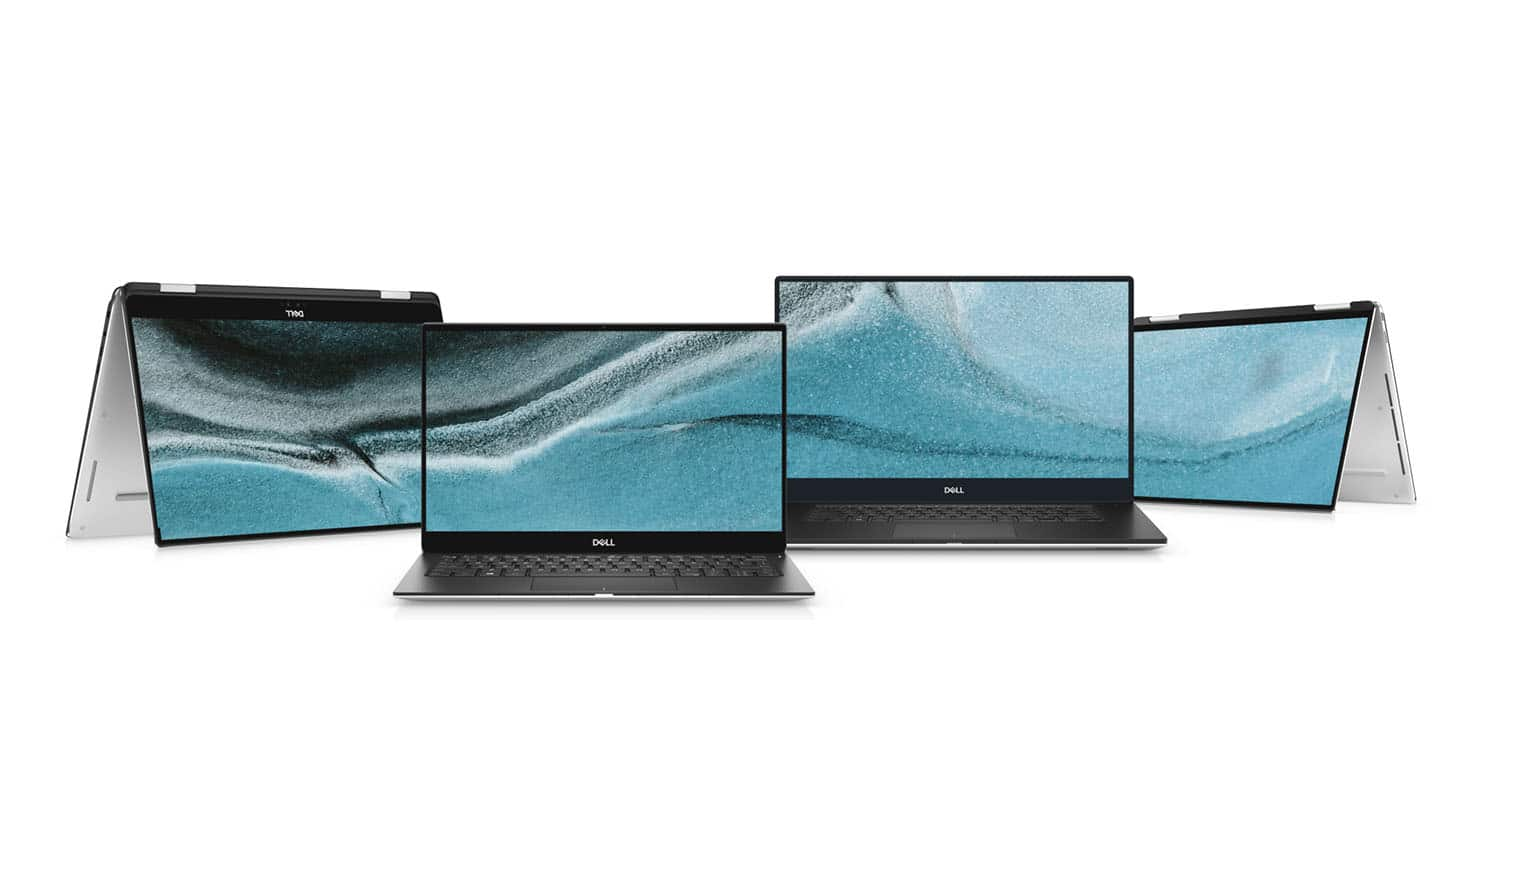 dell xps 13 2-in-1 7390 featured image